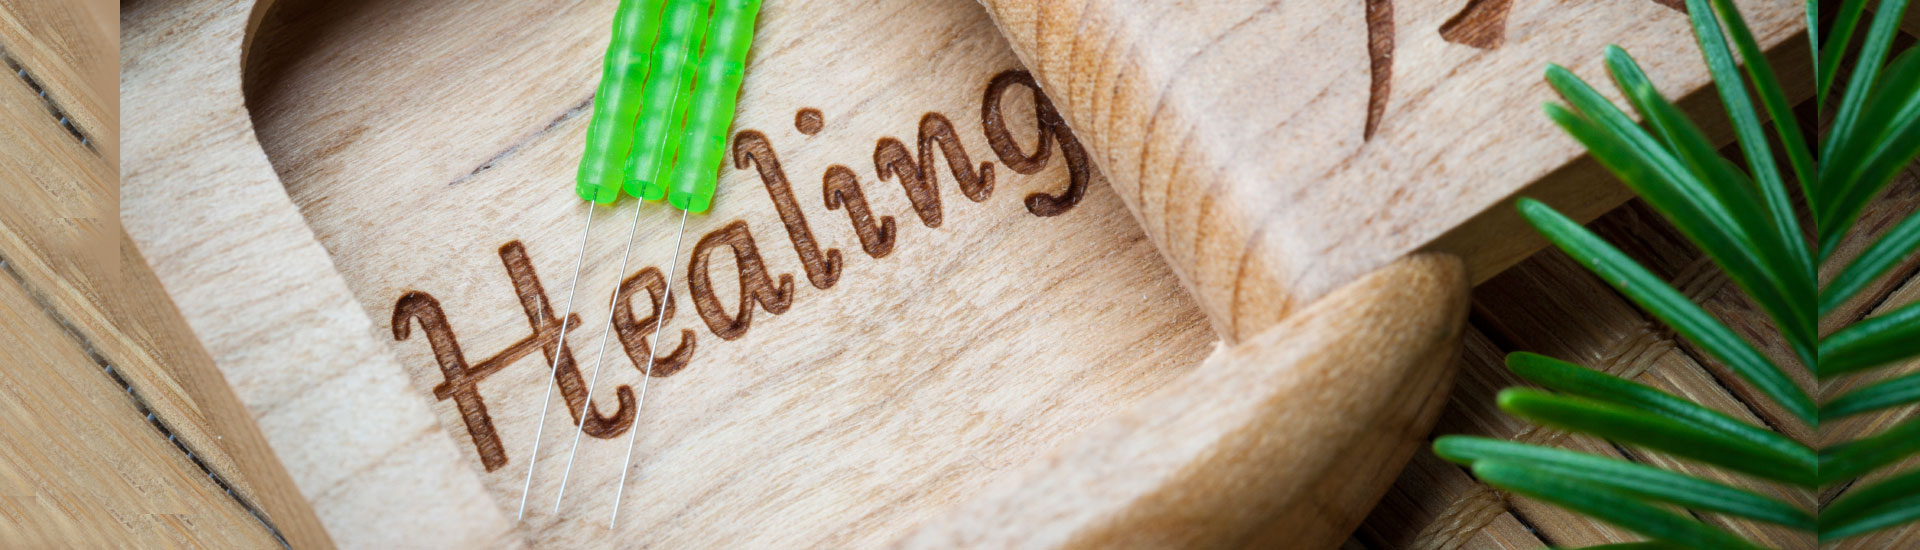 Healing - Naturopathic Medicine and Acupuncture